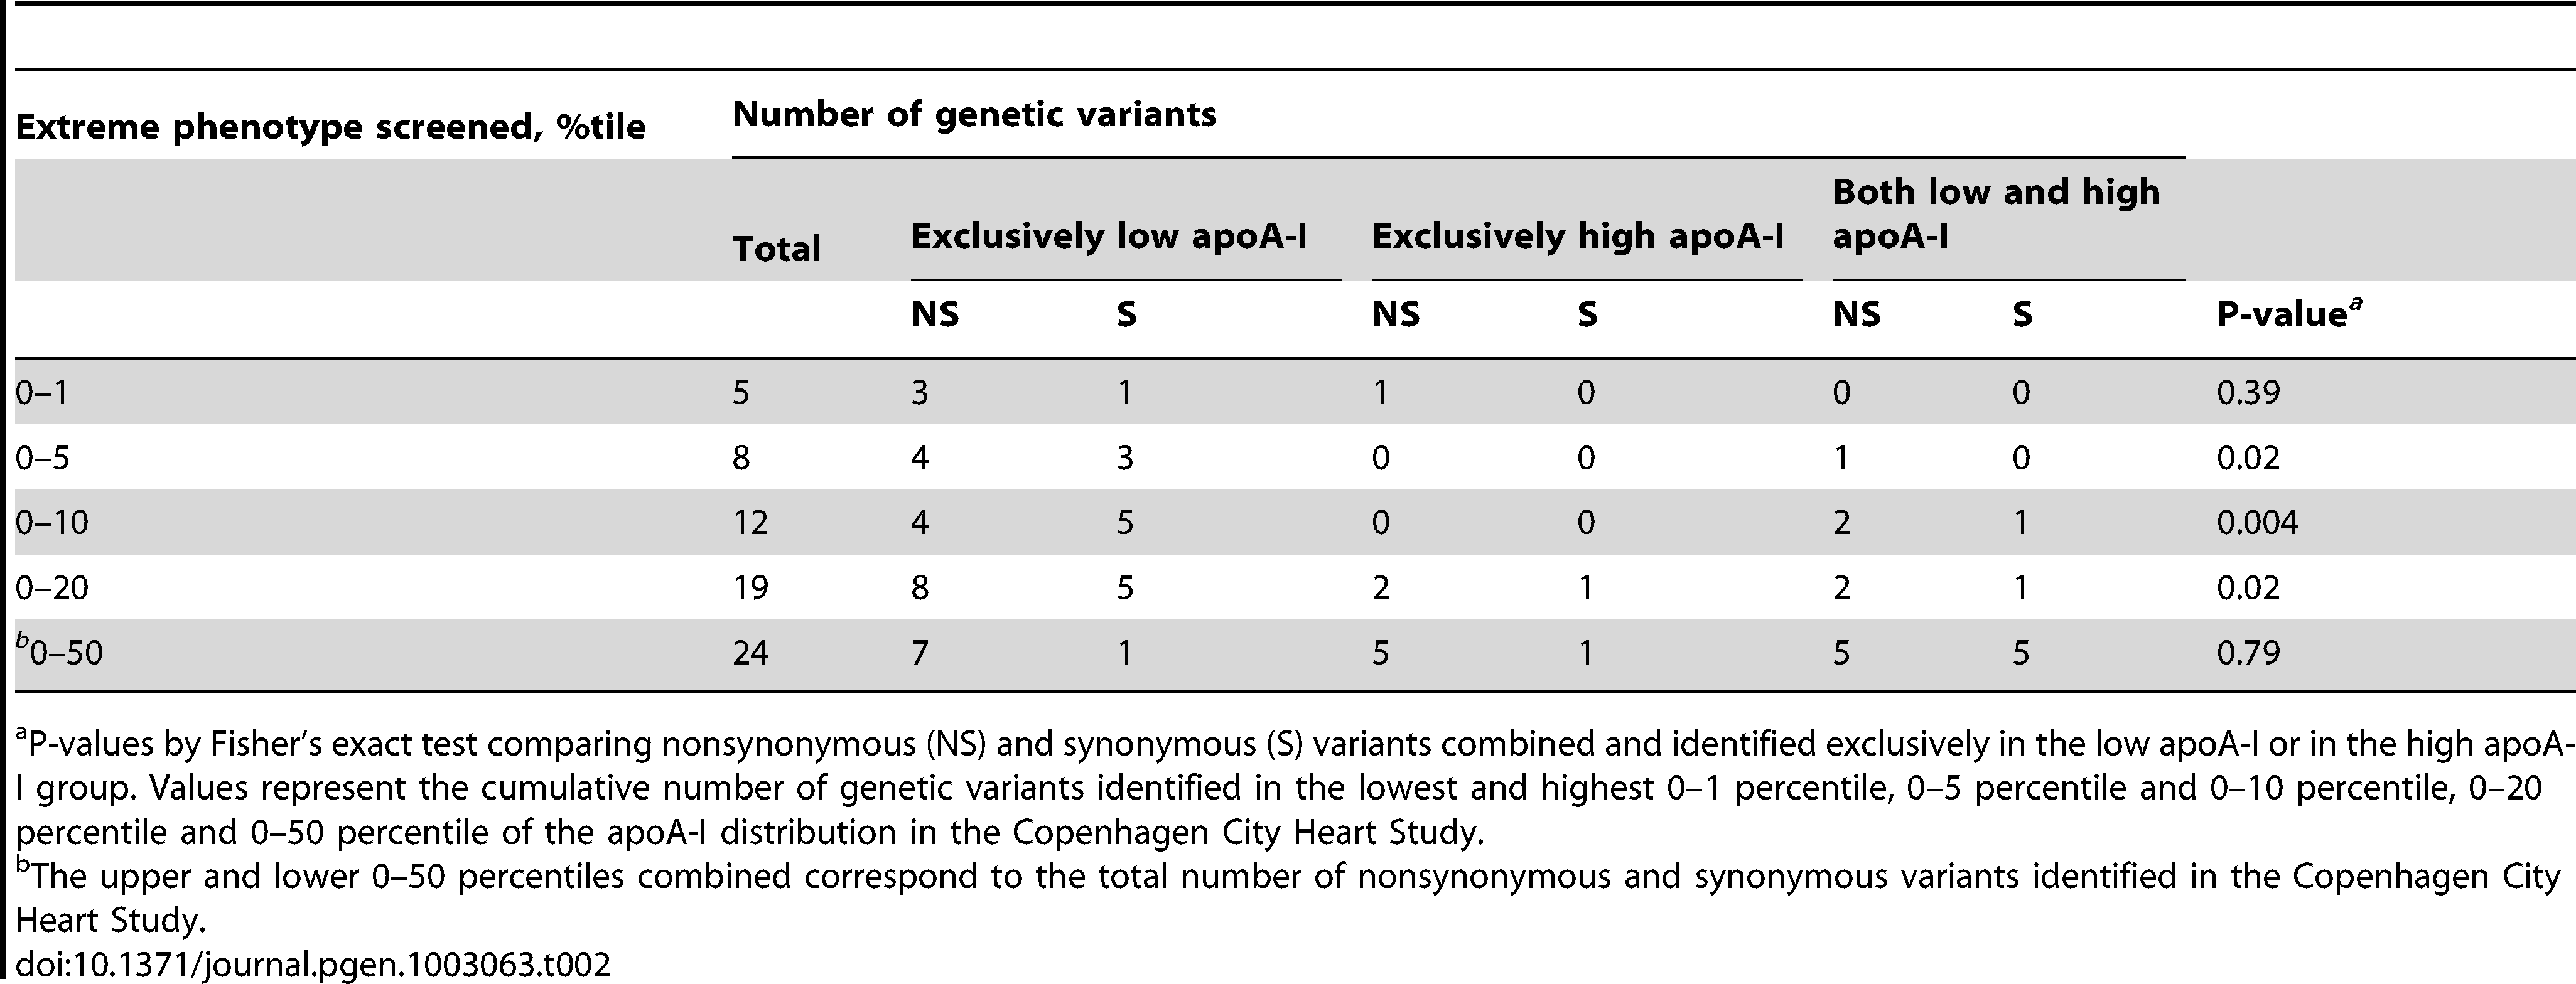 Number of nonsynonymous and synonymous variants identified in <i>APOA1</i> by apoA-I percentiles.